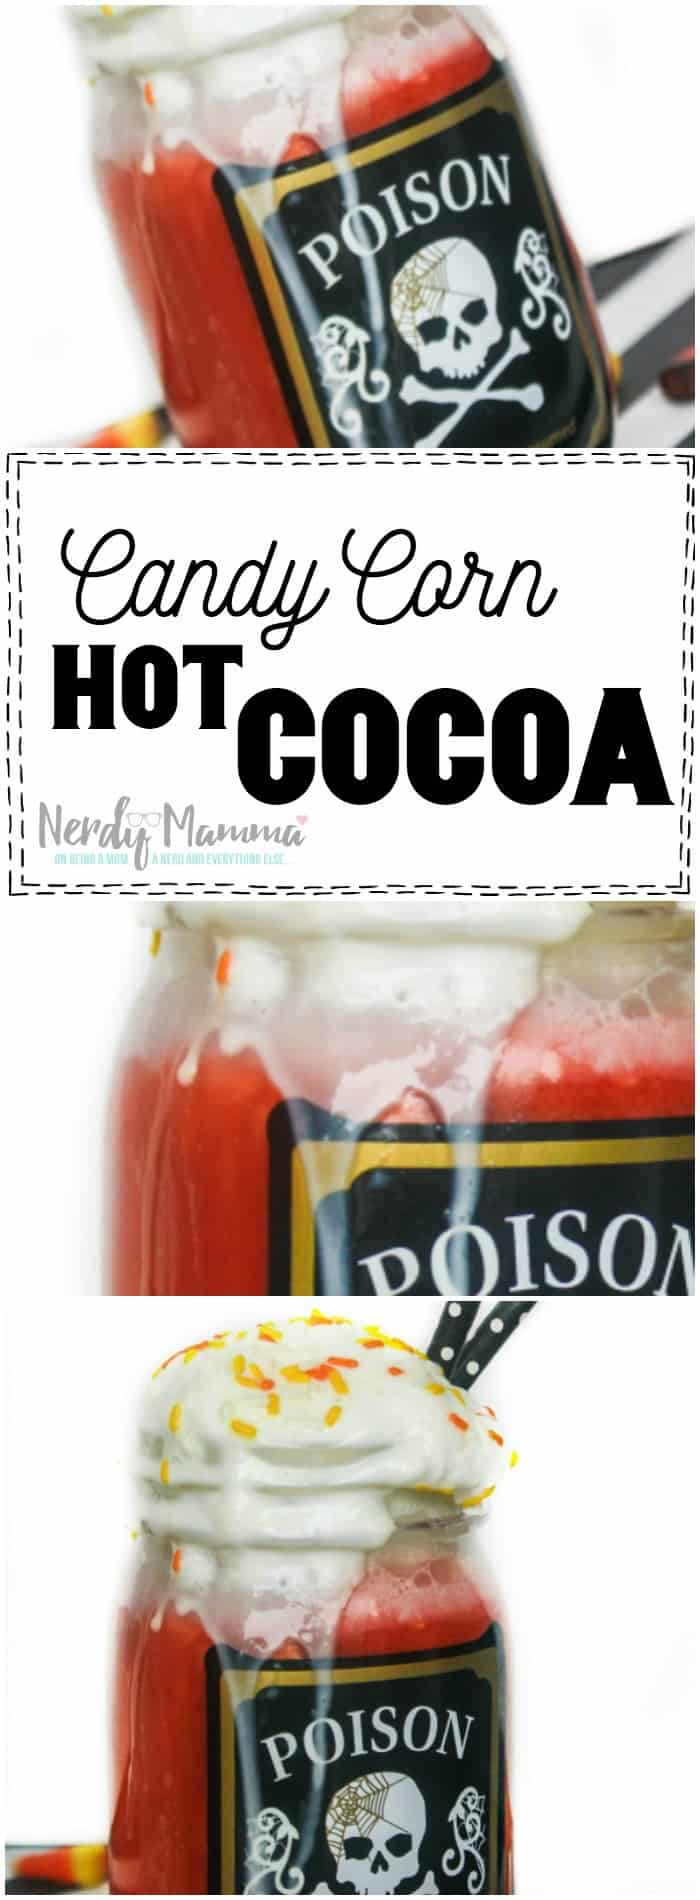 I love this easy recipe for candy corn hot cocoa. Sounds so yummy!